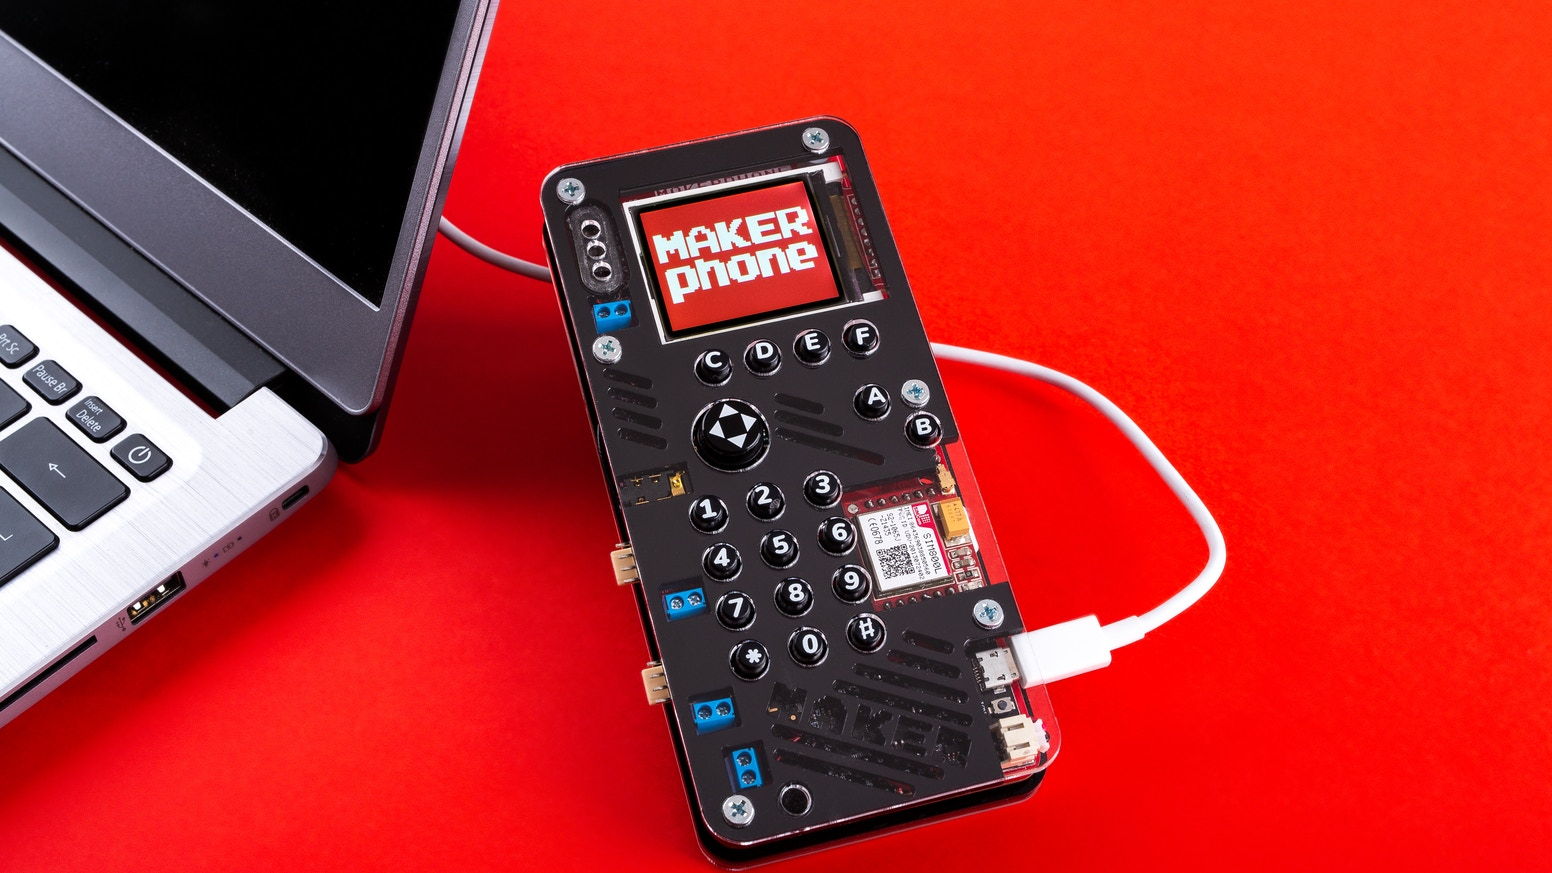 MAKERphone is an educational DIY mobile phone designed to bring electronics and programming to the crowd in a fun and interesting way.